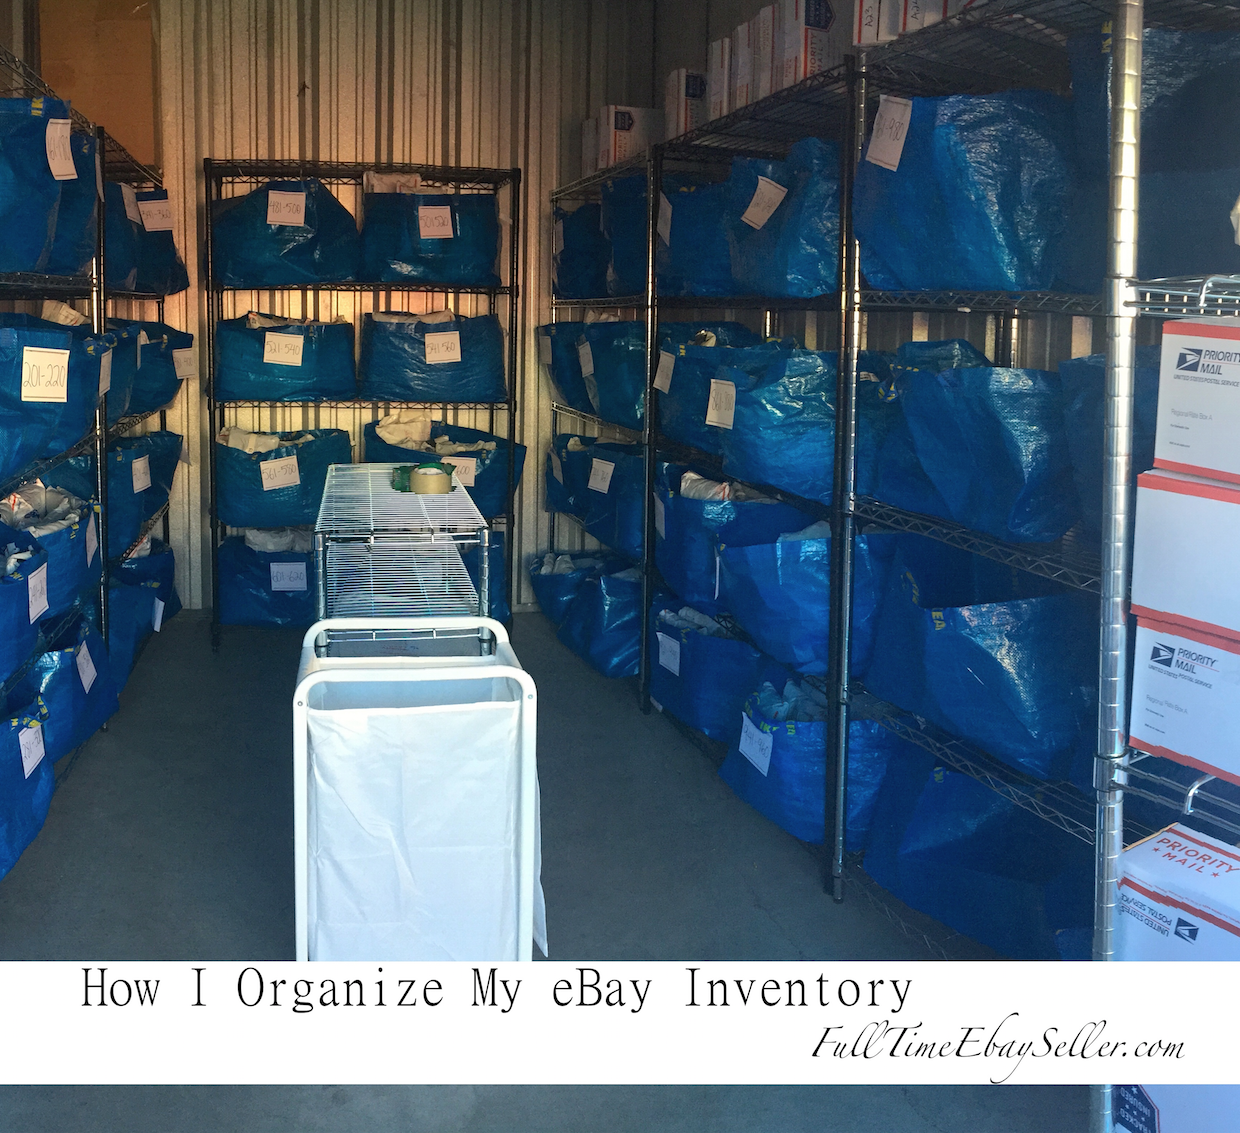 How they Organize Their eBay Inventory: using Ikea blue ...